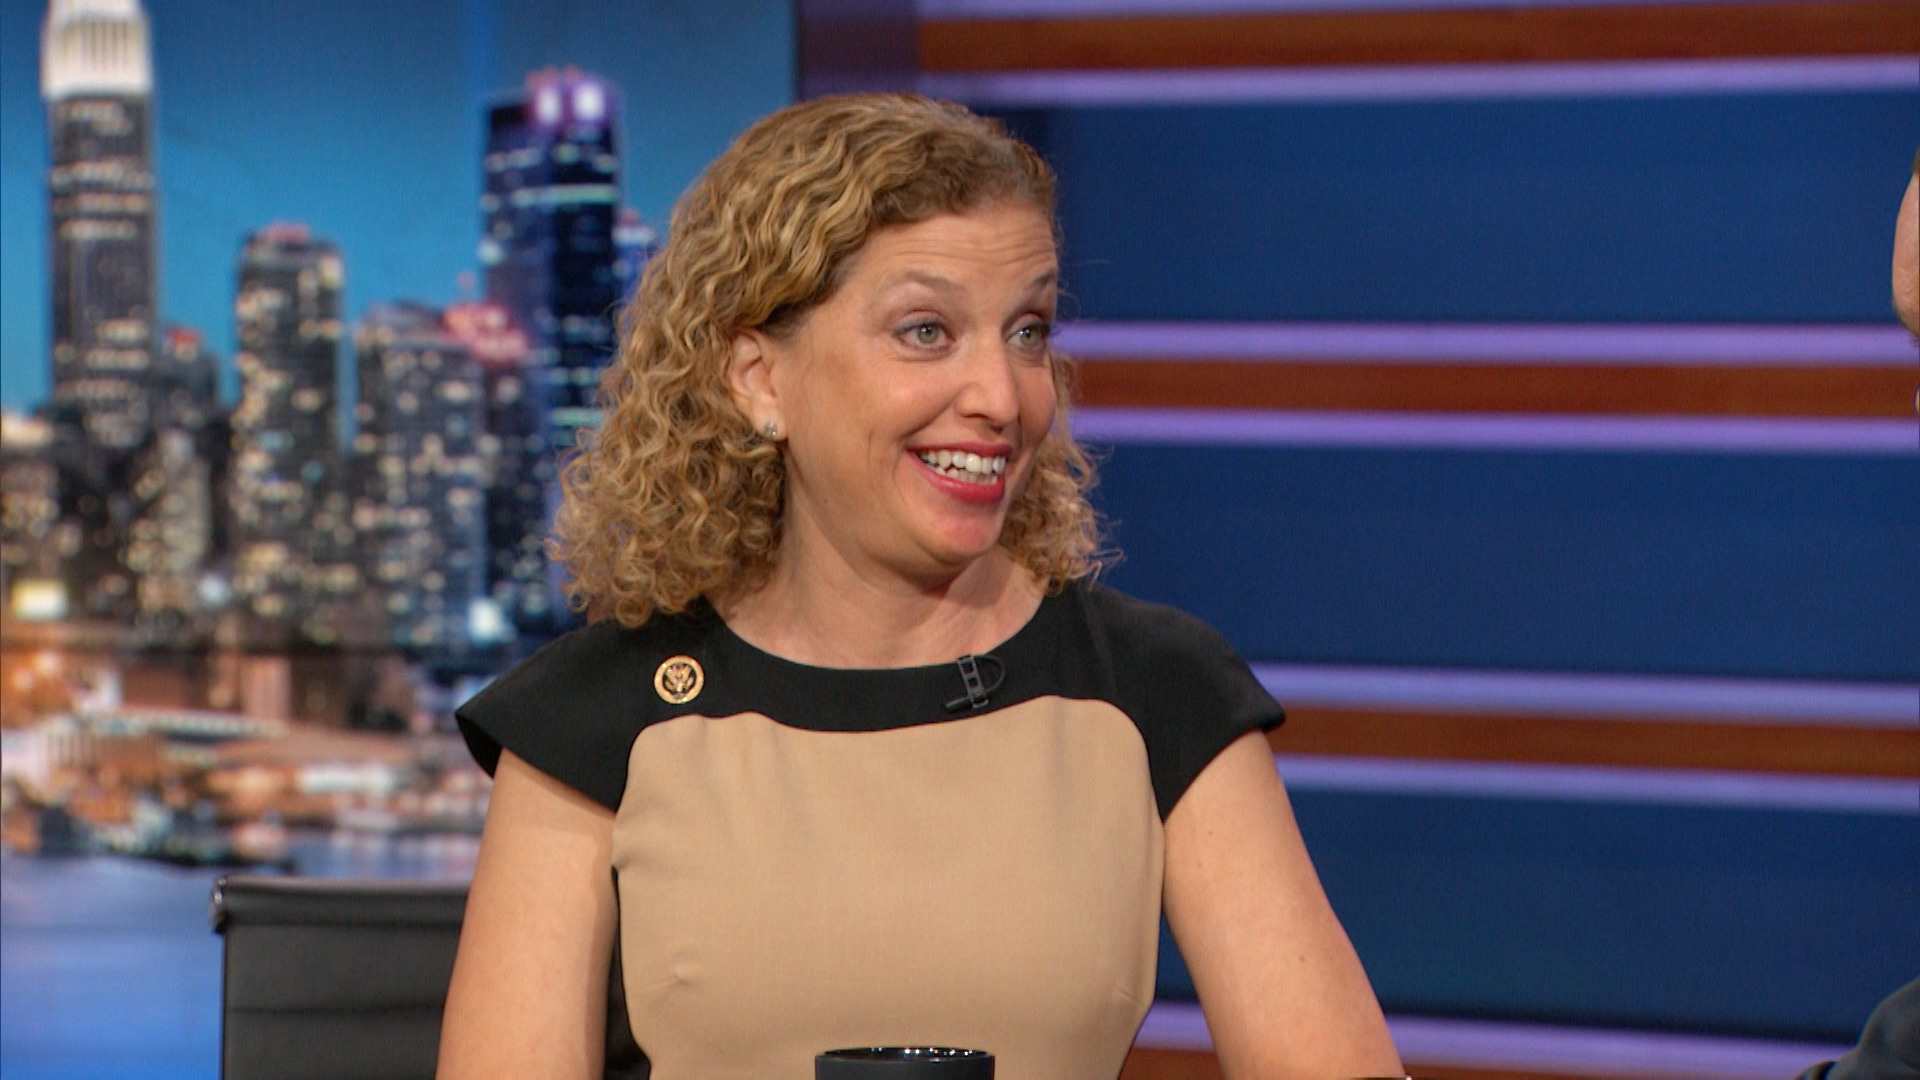 - DEBBIE WASSERMAN SCHULTZ EXTENDED INTERVIEW